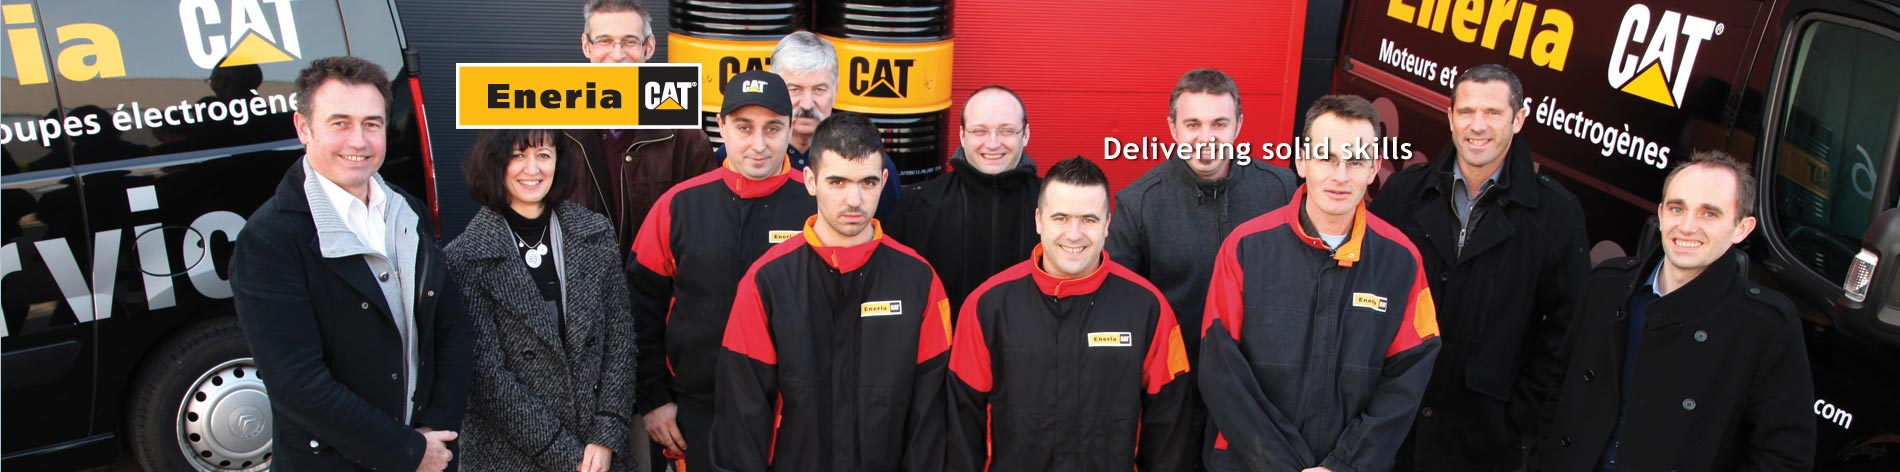 Whatever your needs, our business engineers and technicians are standing by to serve you.